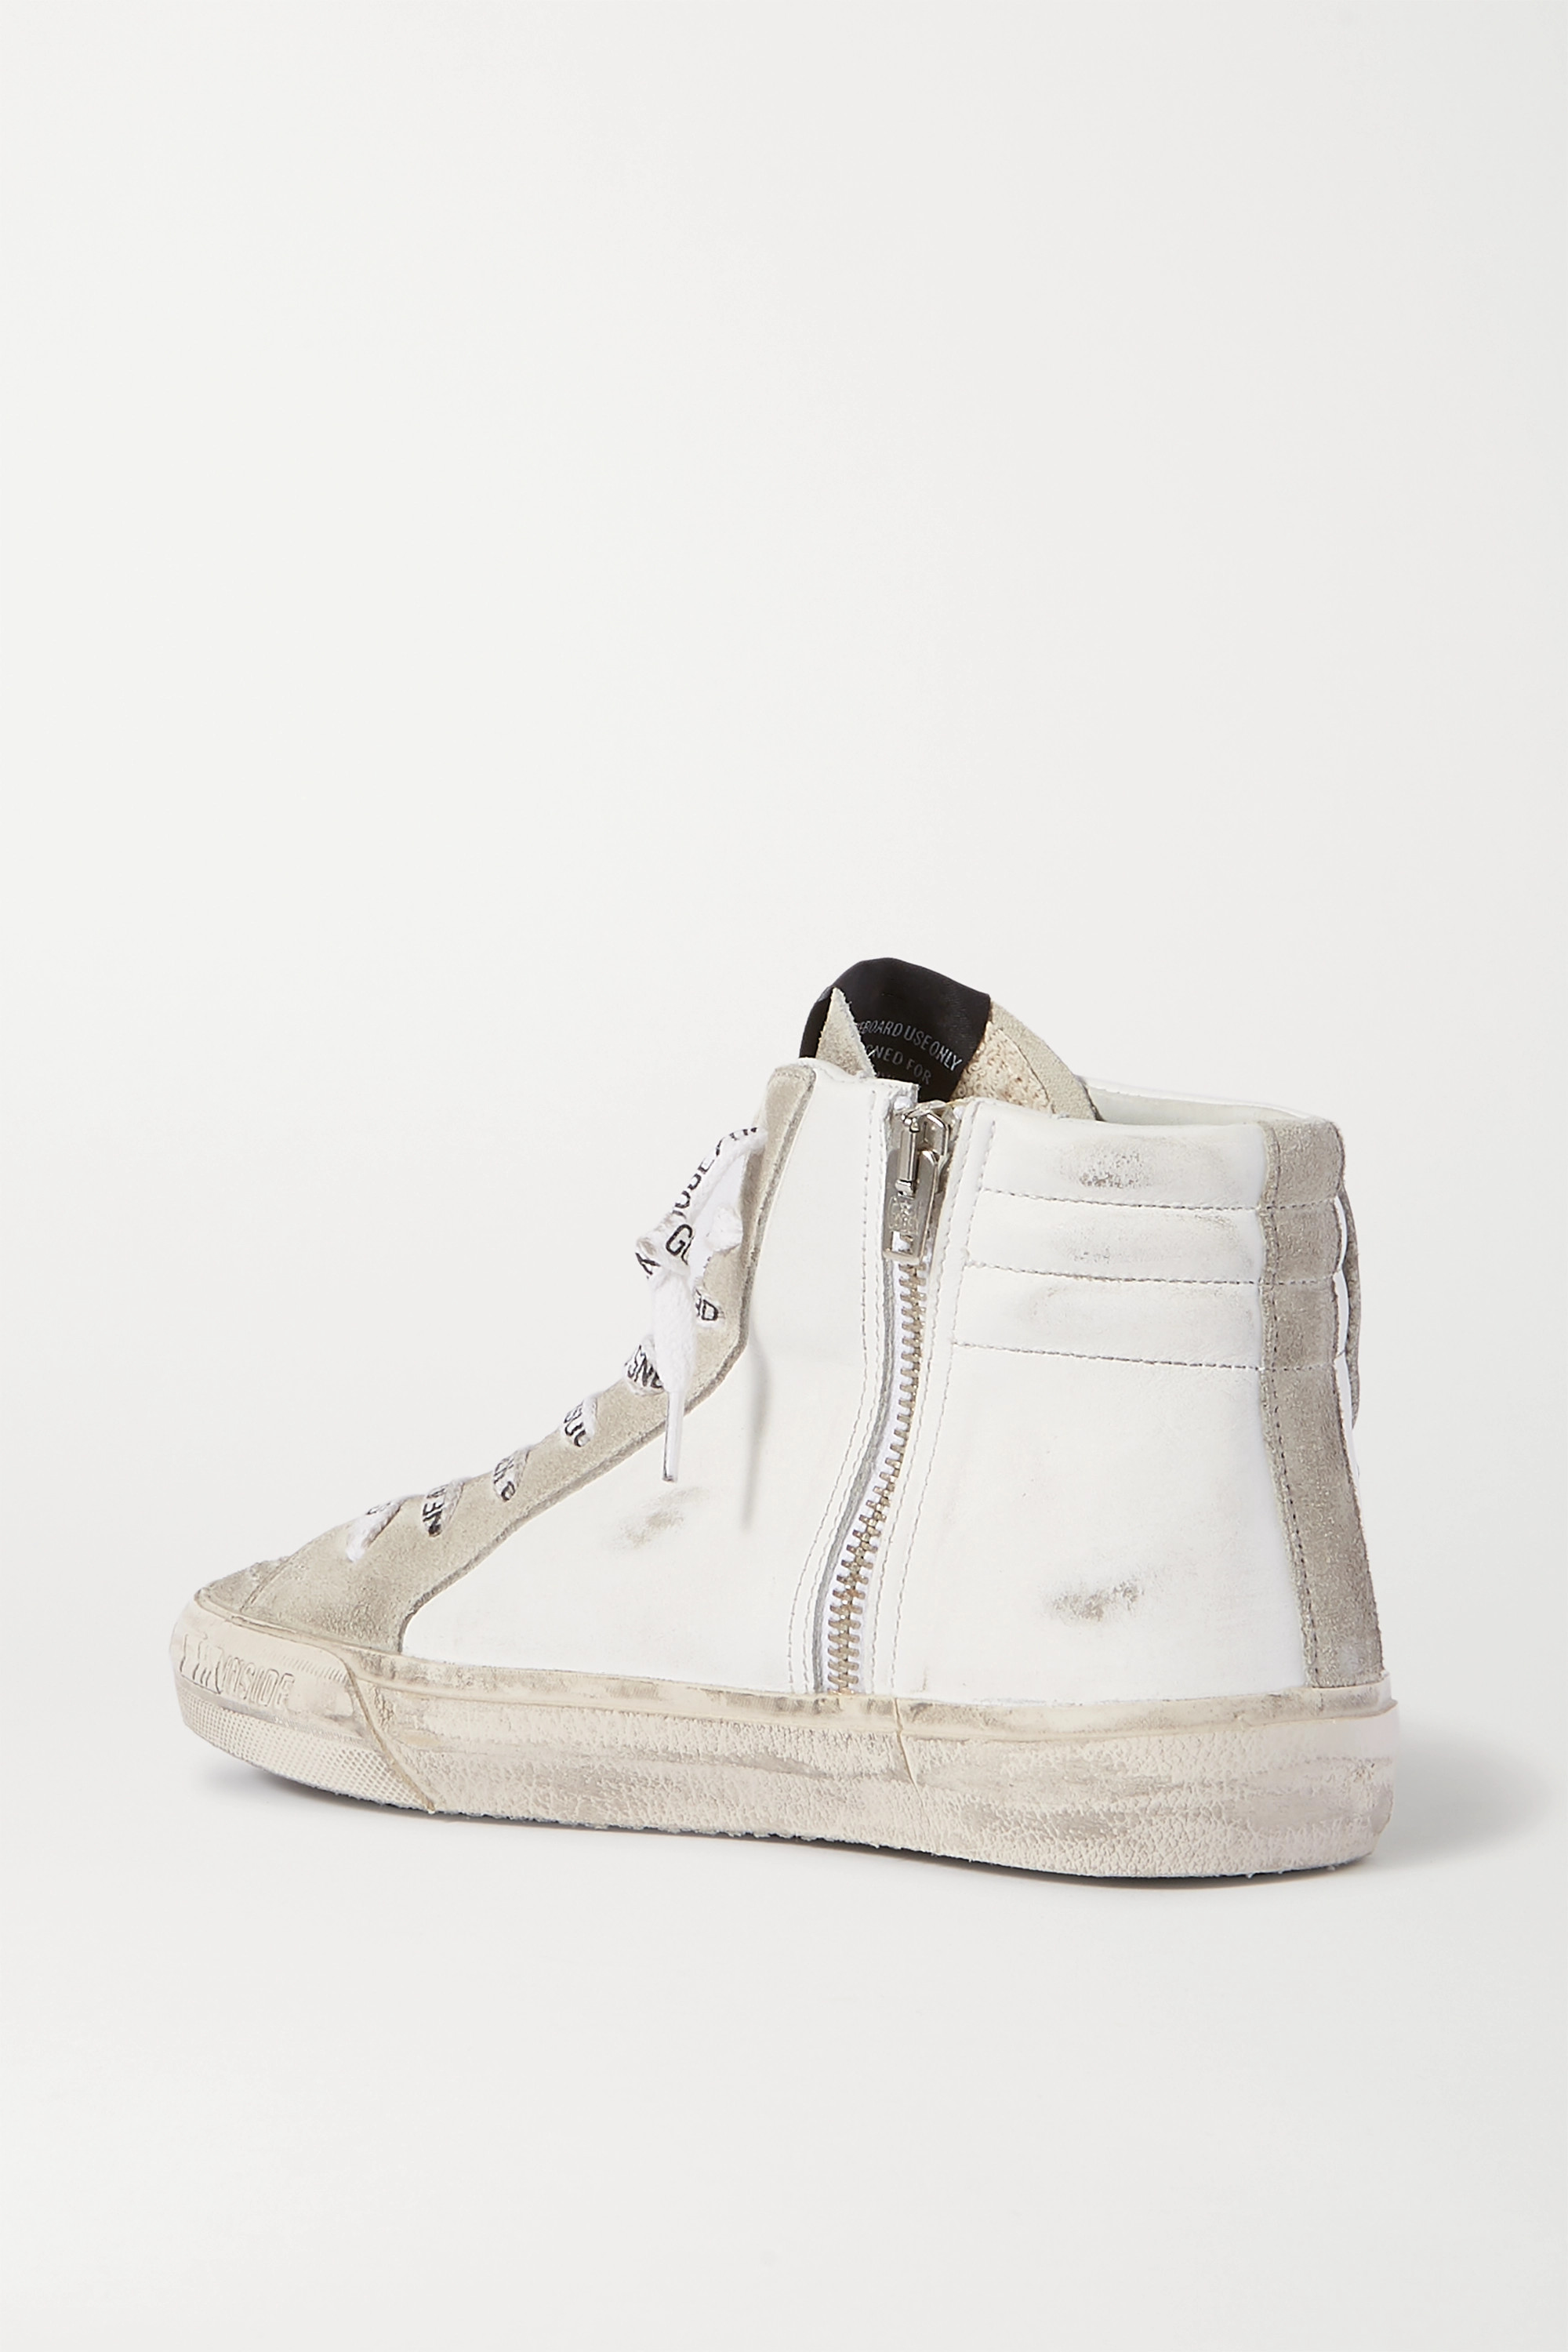 GOLDEN GOOSE Slide distressed leather and suede high-top sneakers